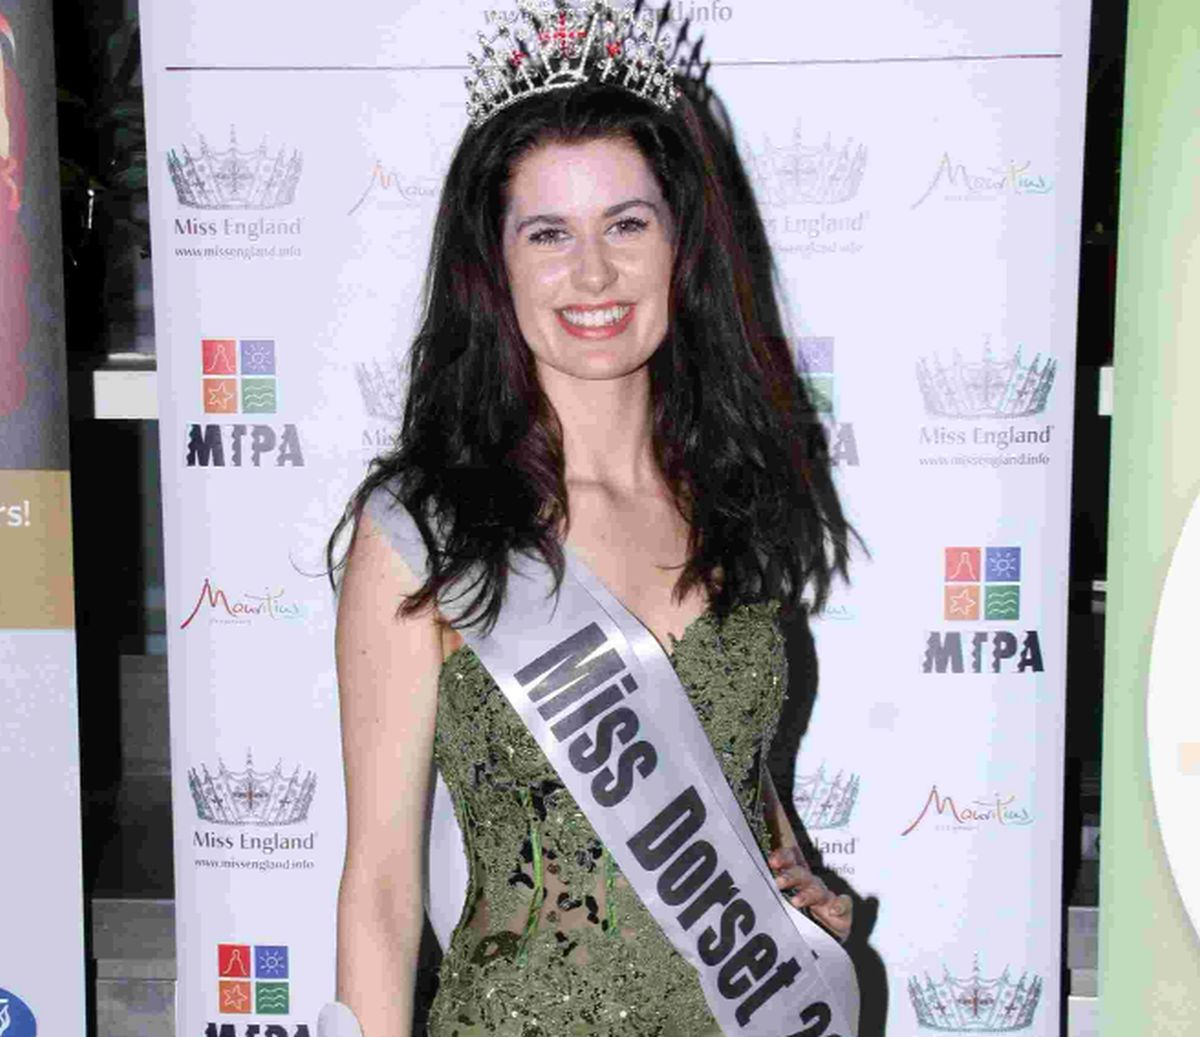 Dorchester student Holly crowned Miss Dorset